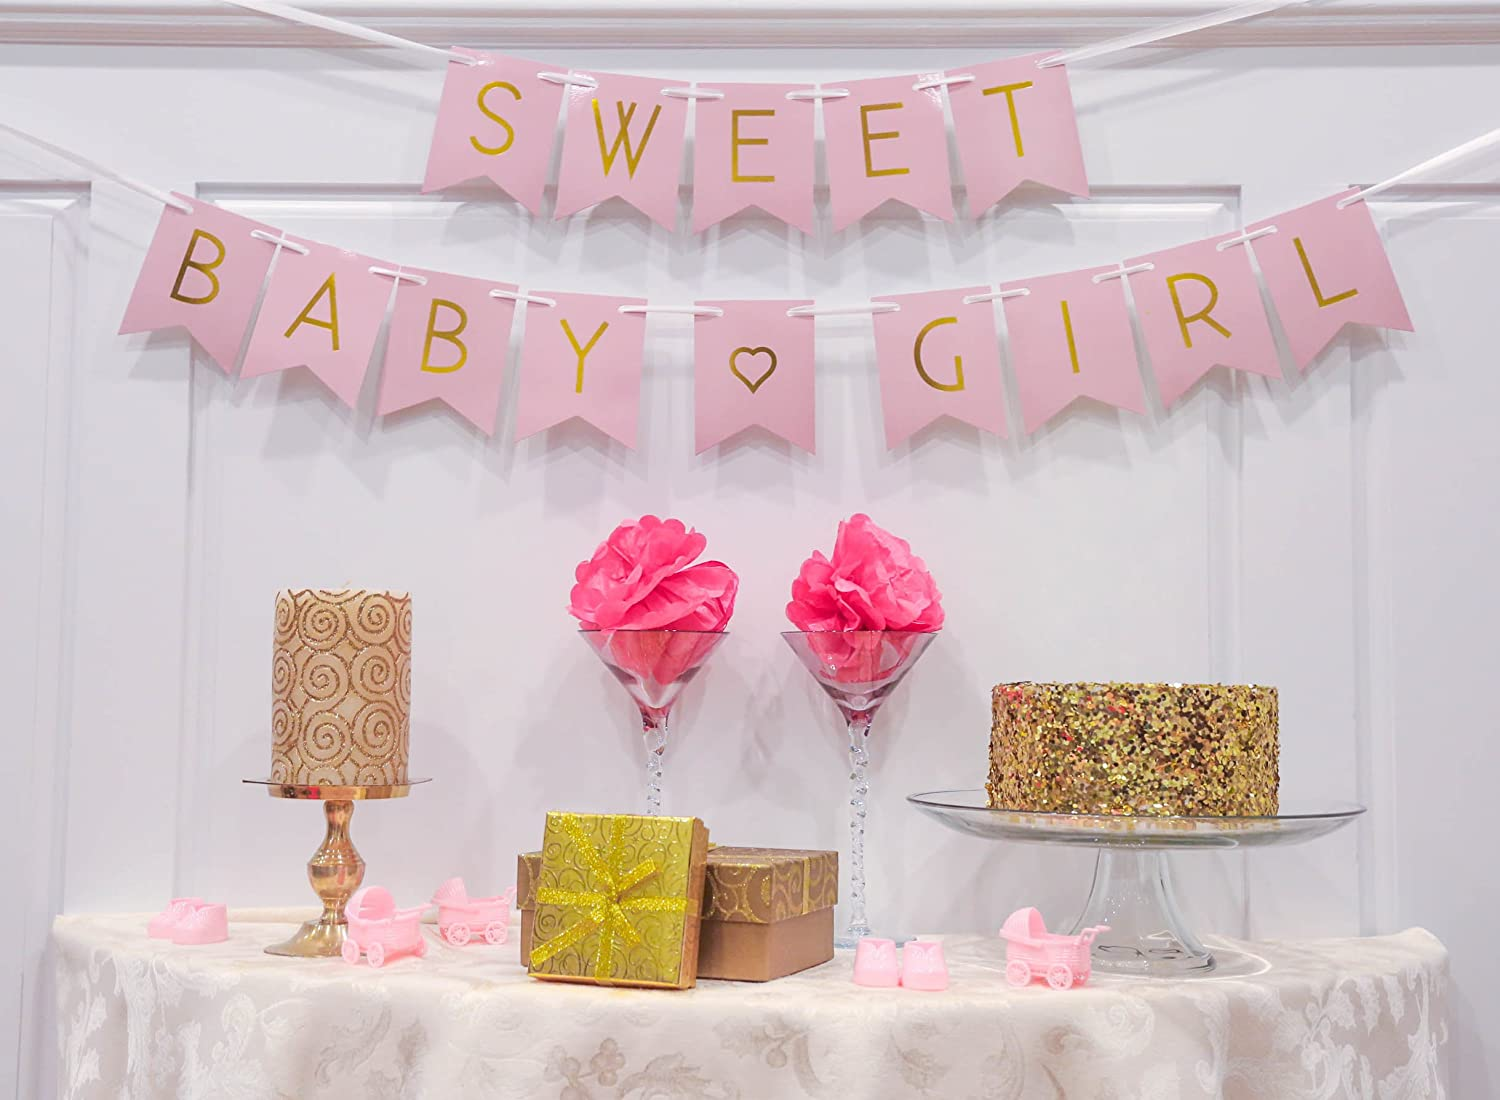 Uncategorized girl baby shower decorations christassam for Home decorations for baby shower